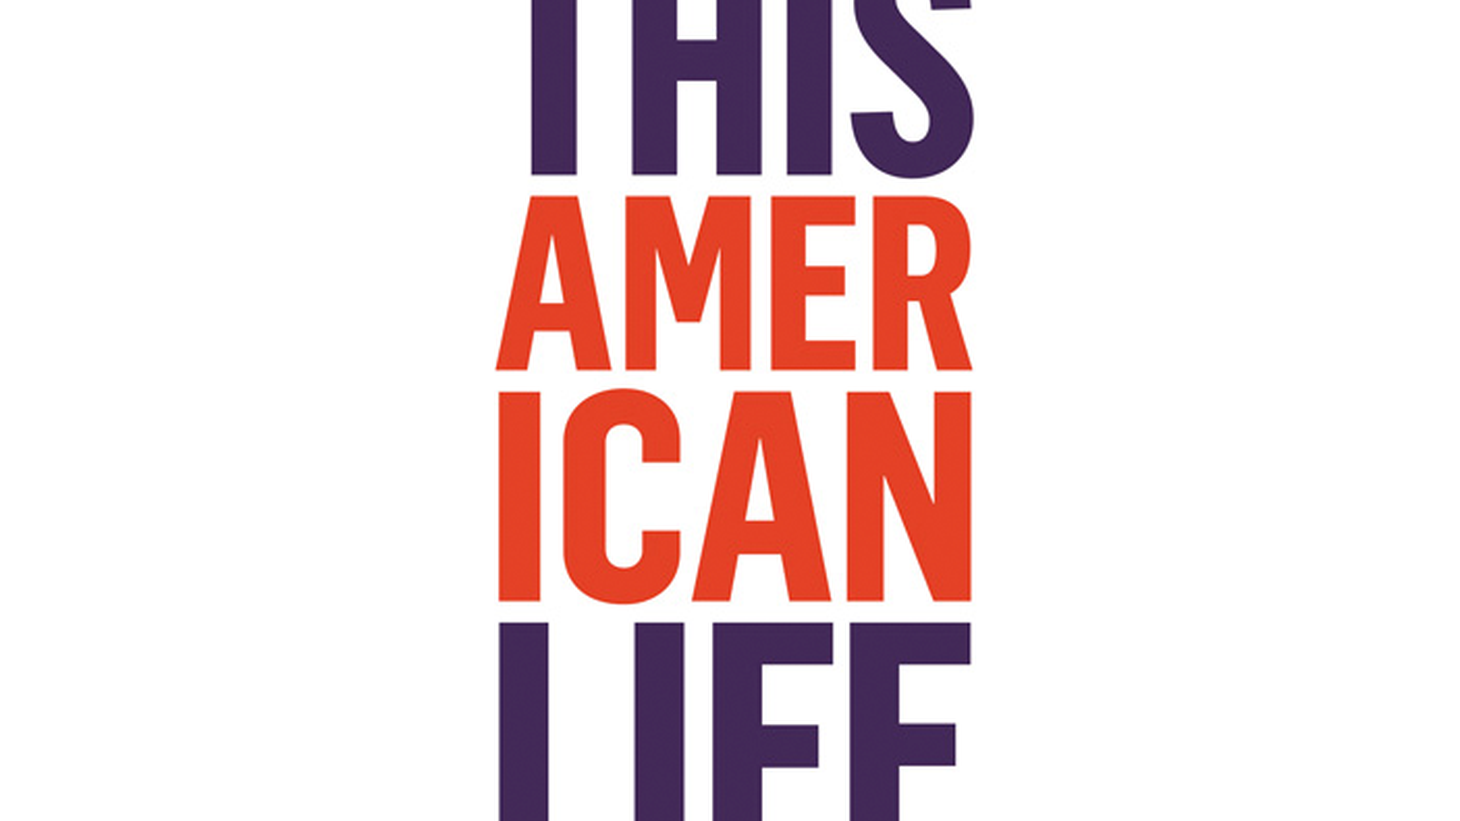 Support the broadcast and webcast of This American Life on KCRW.com by subscribing online.  KCRW relies on the support of people like you.